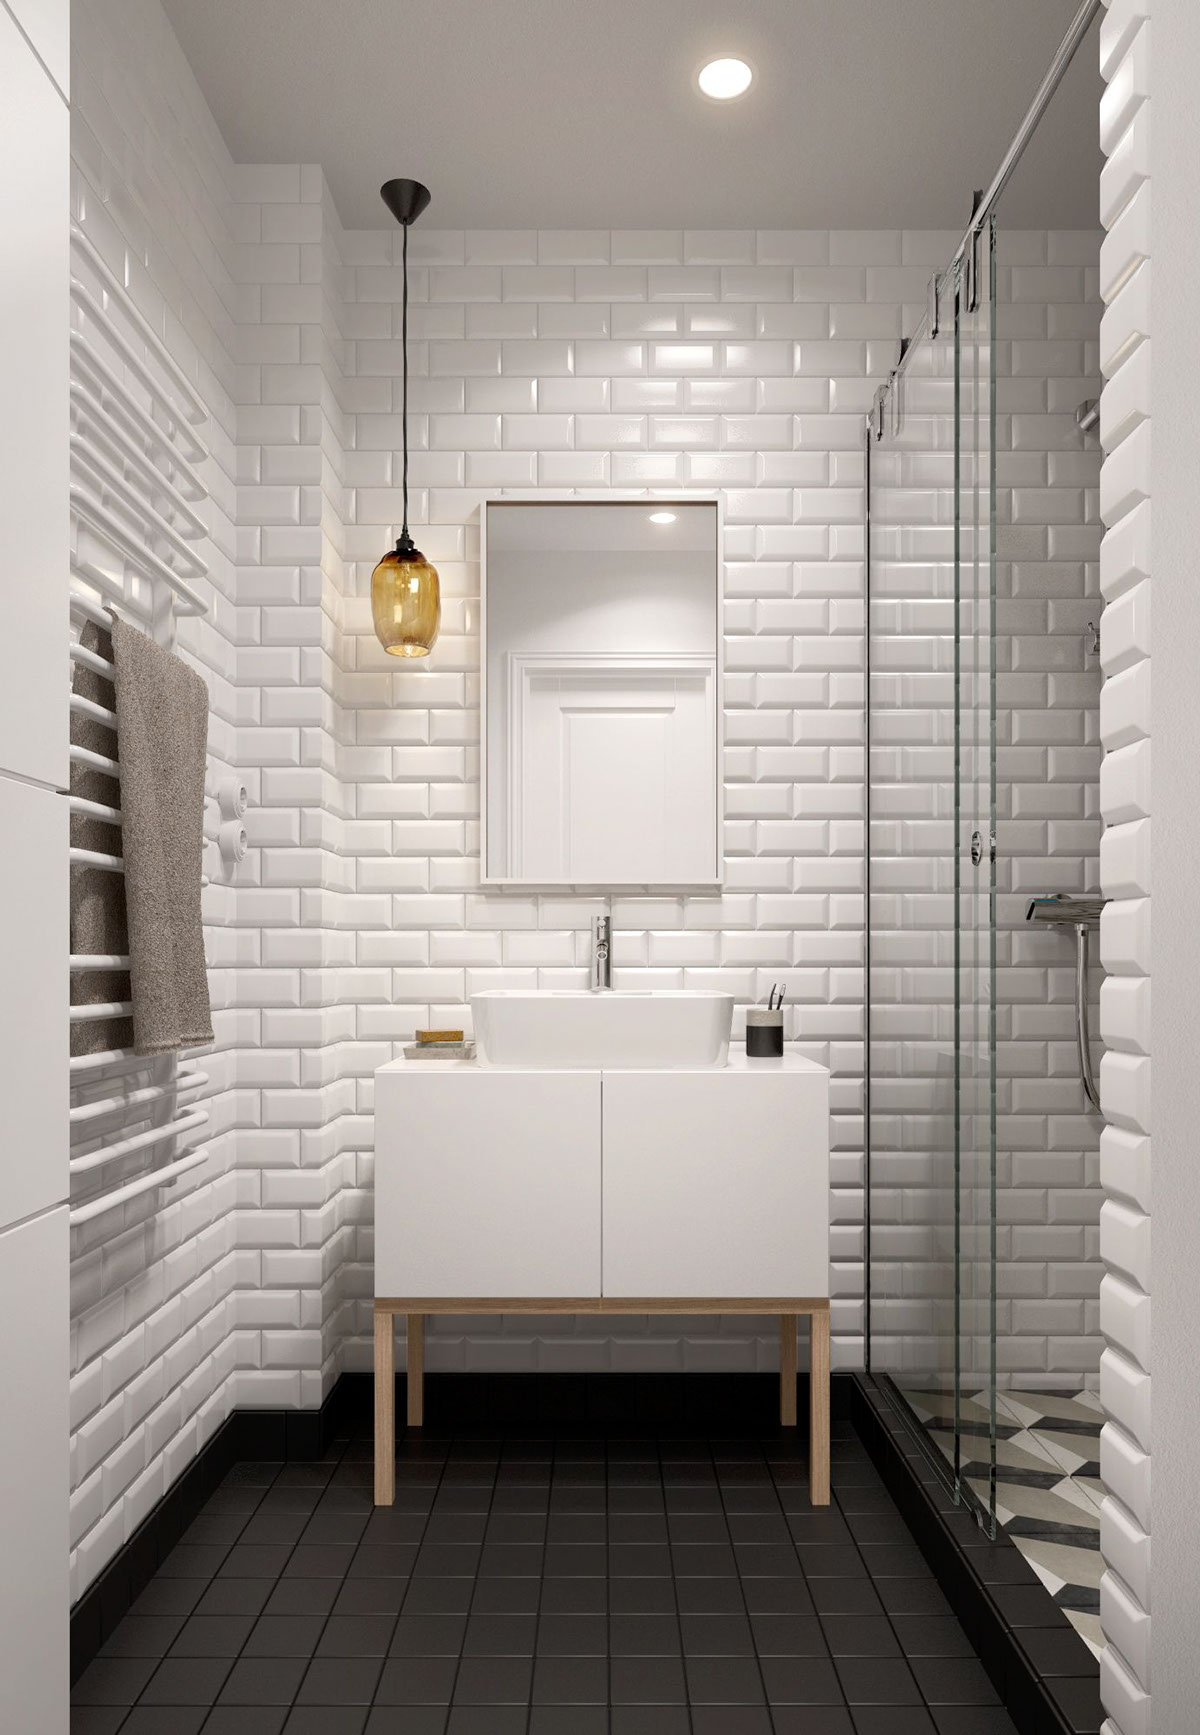 Black Tiled Bathroom A Midcentury Inspired Apartment With Scandinavian Tendencies